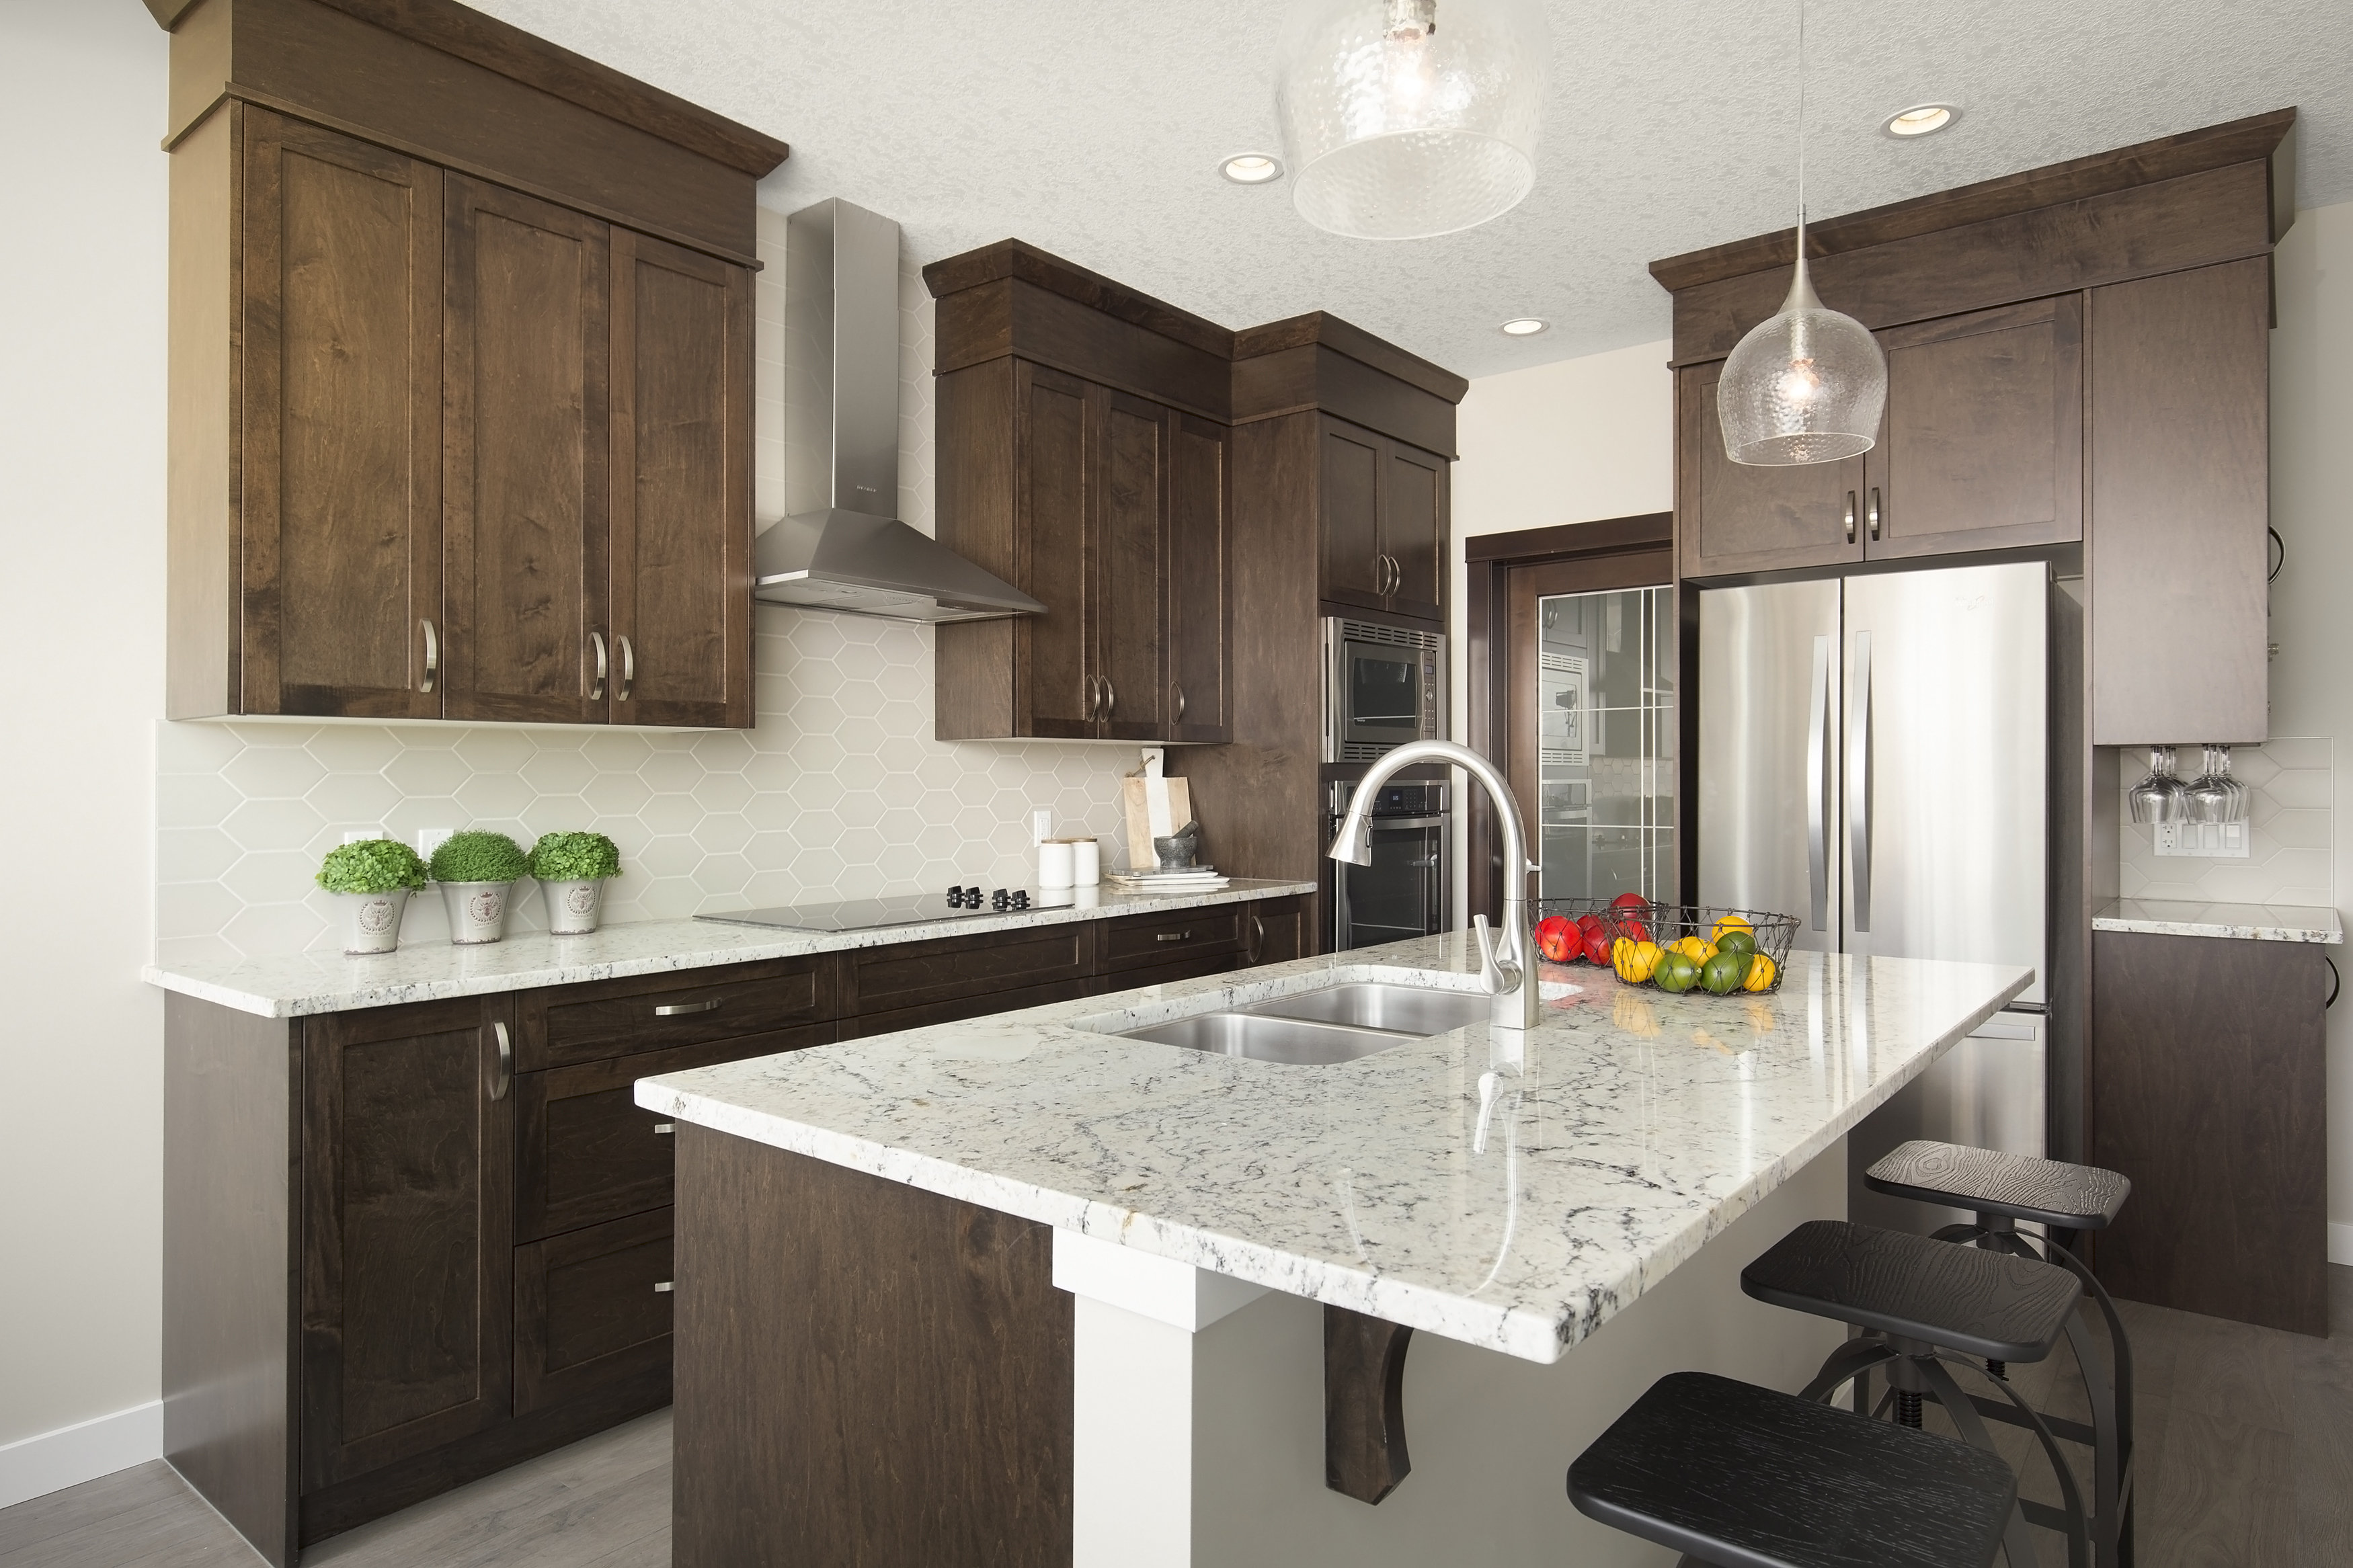 example kitchen with marble counter top and wood cabinets in a shane front drive home.